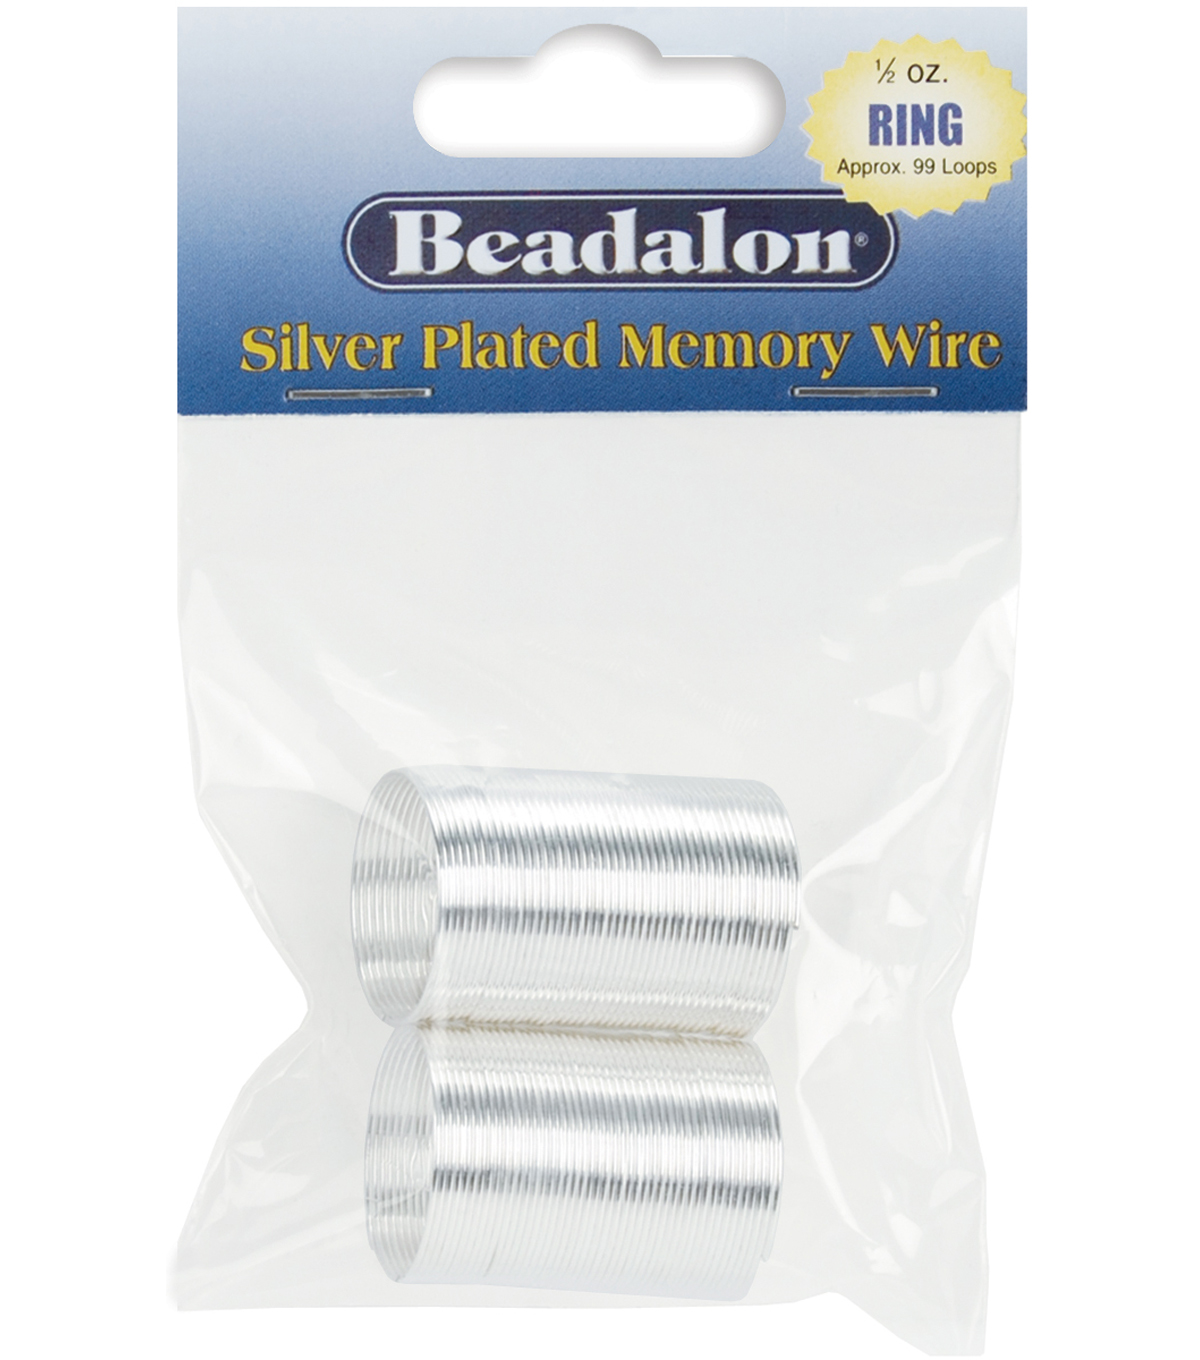 Memory Wire Ring .5oz/Pkg-Silver Plated/Approx 99 Loops